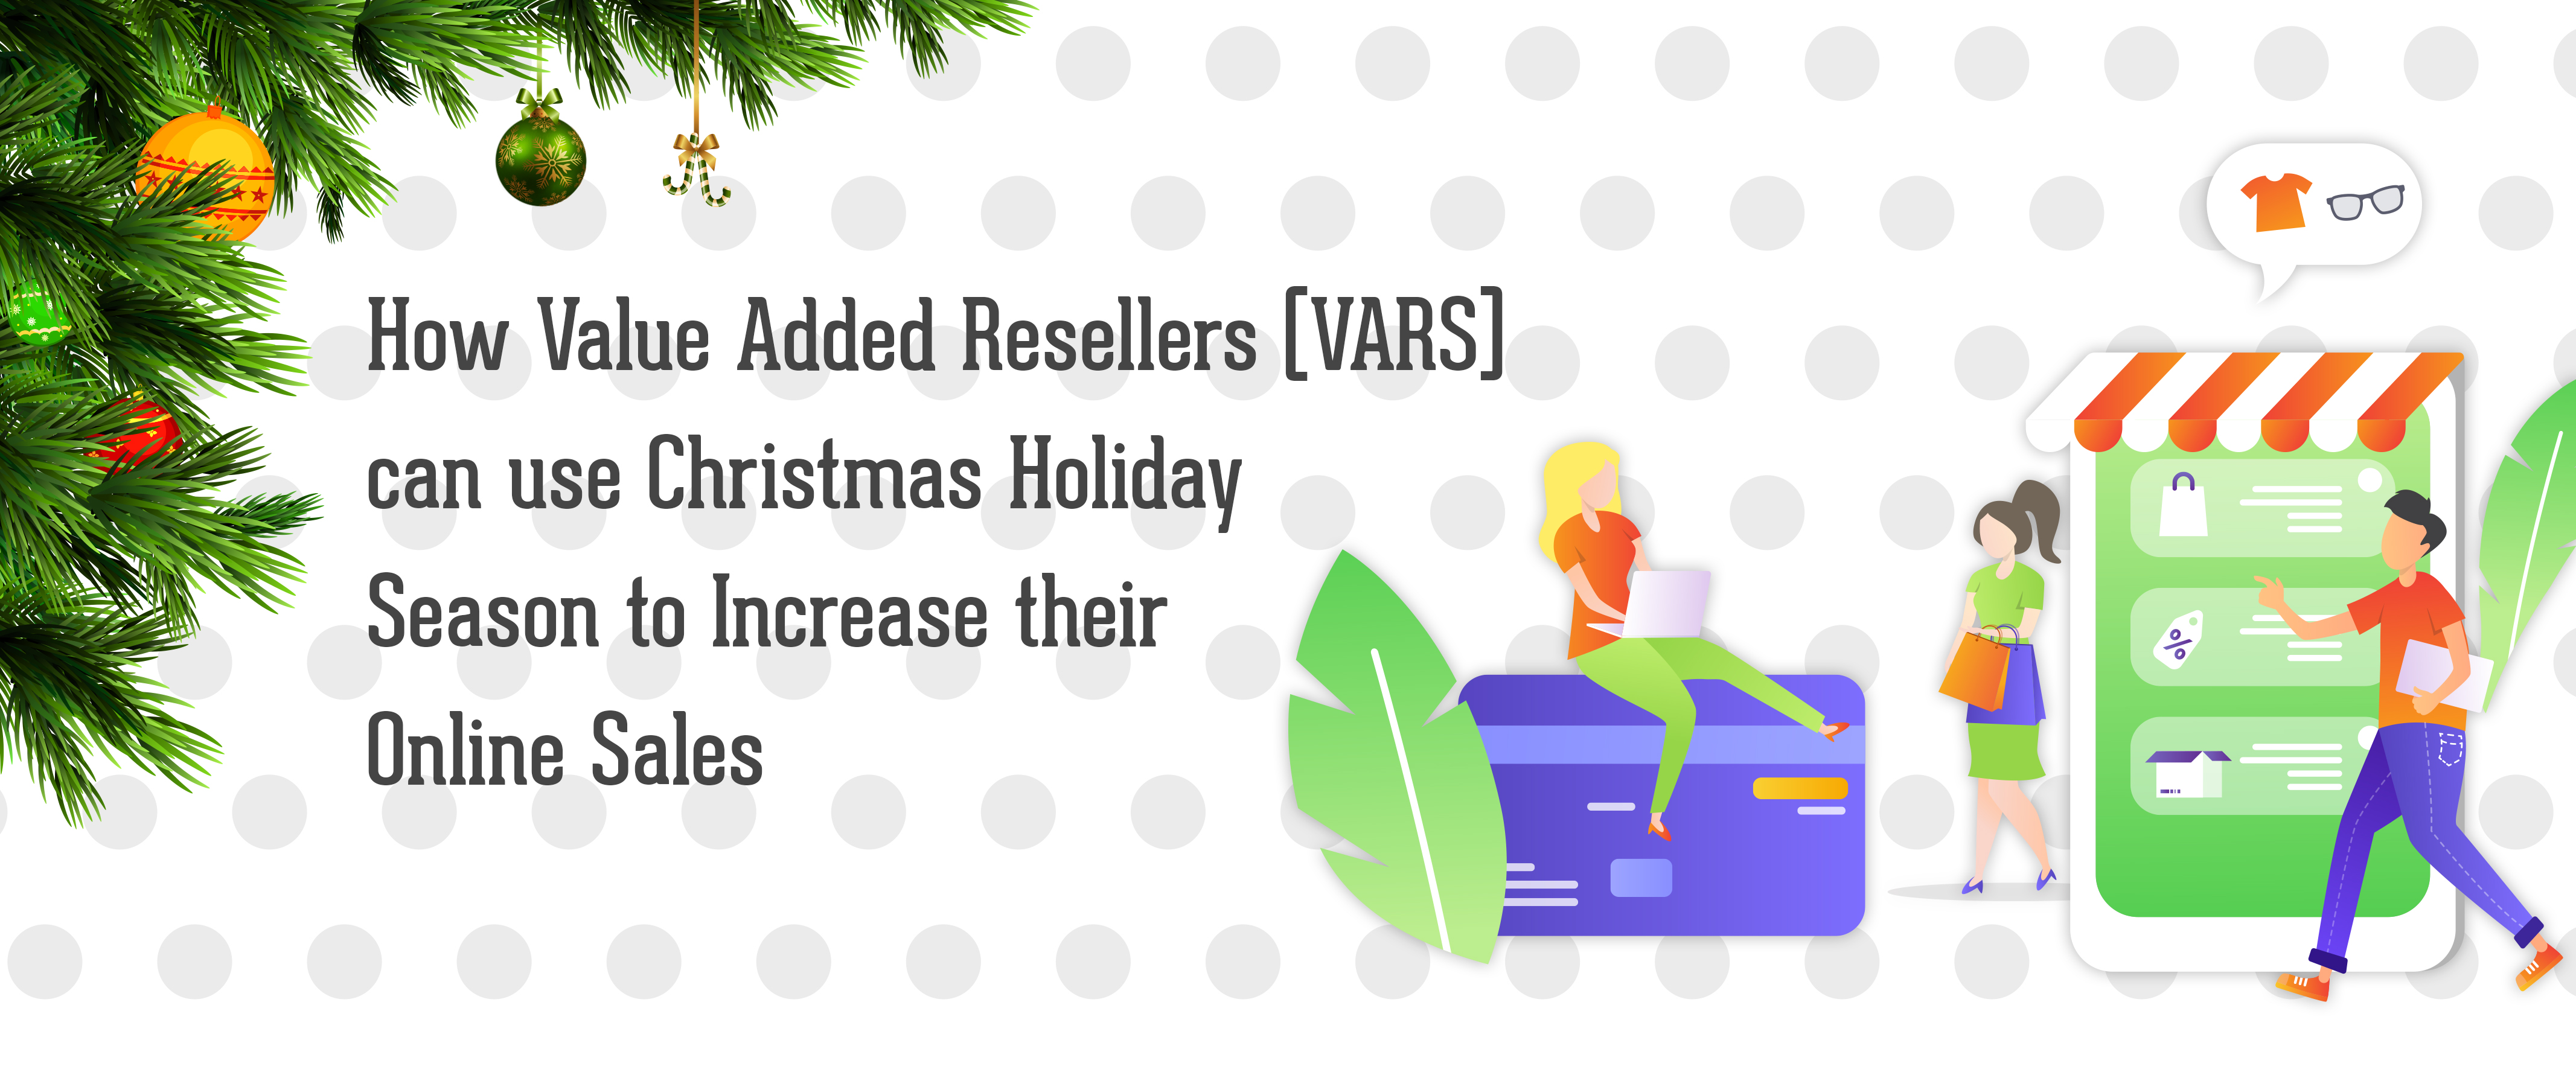 How Value Added Resellers (VARs) can use Christmas Holiday Season to Increase their Online Sales